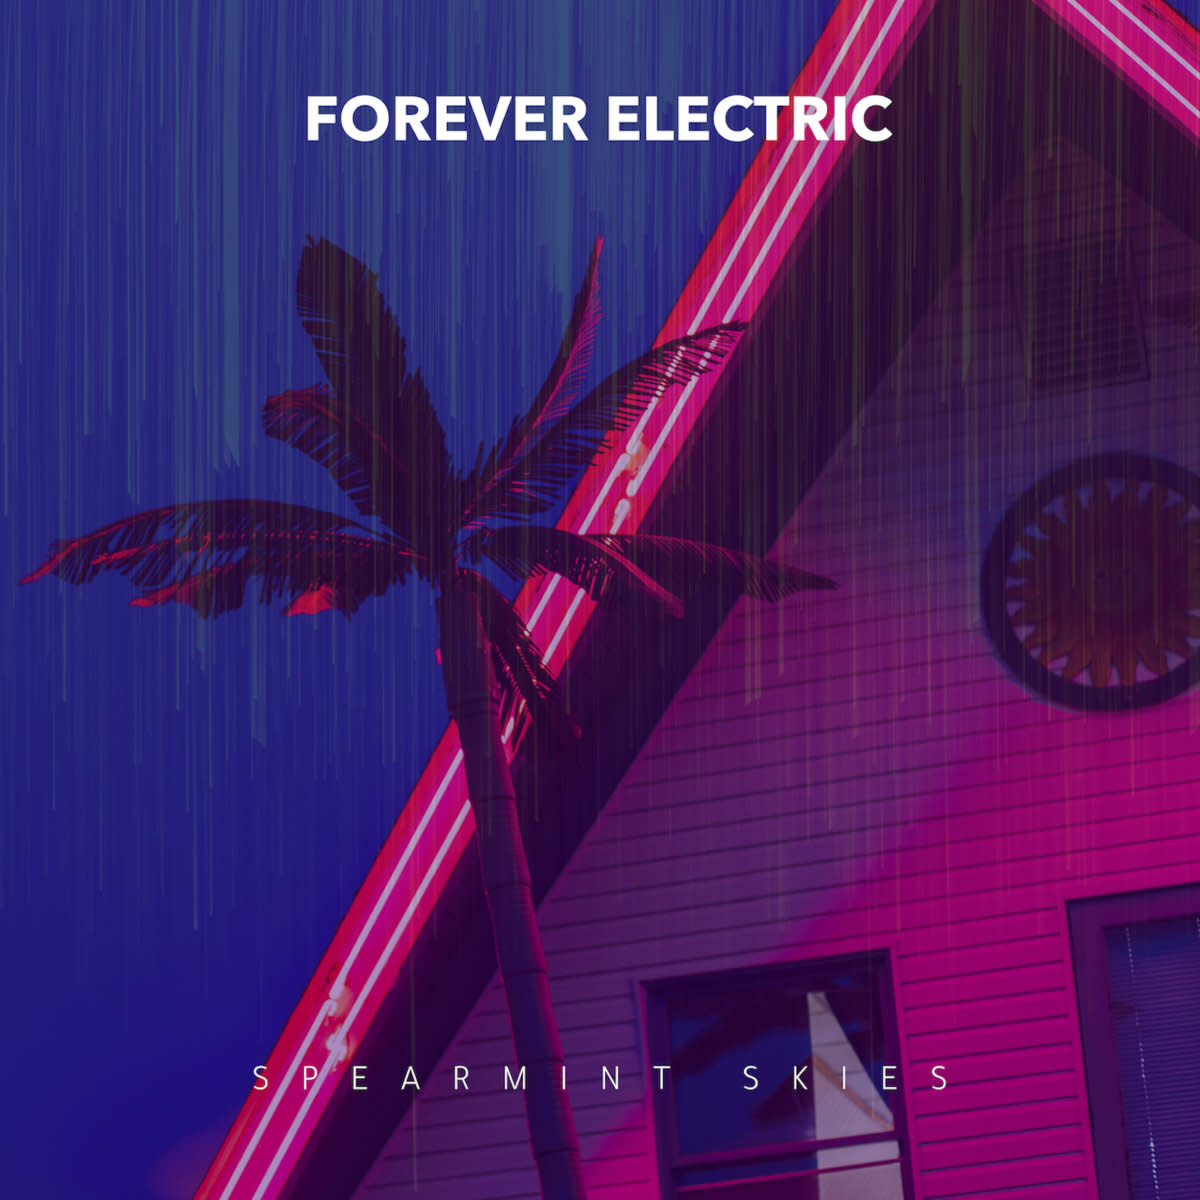 synth-single-review-spearmint-skies-by-forever-electric